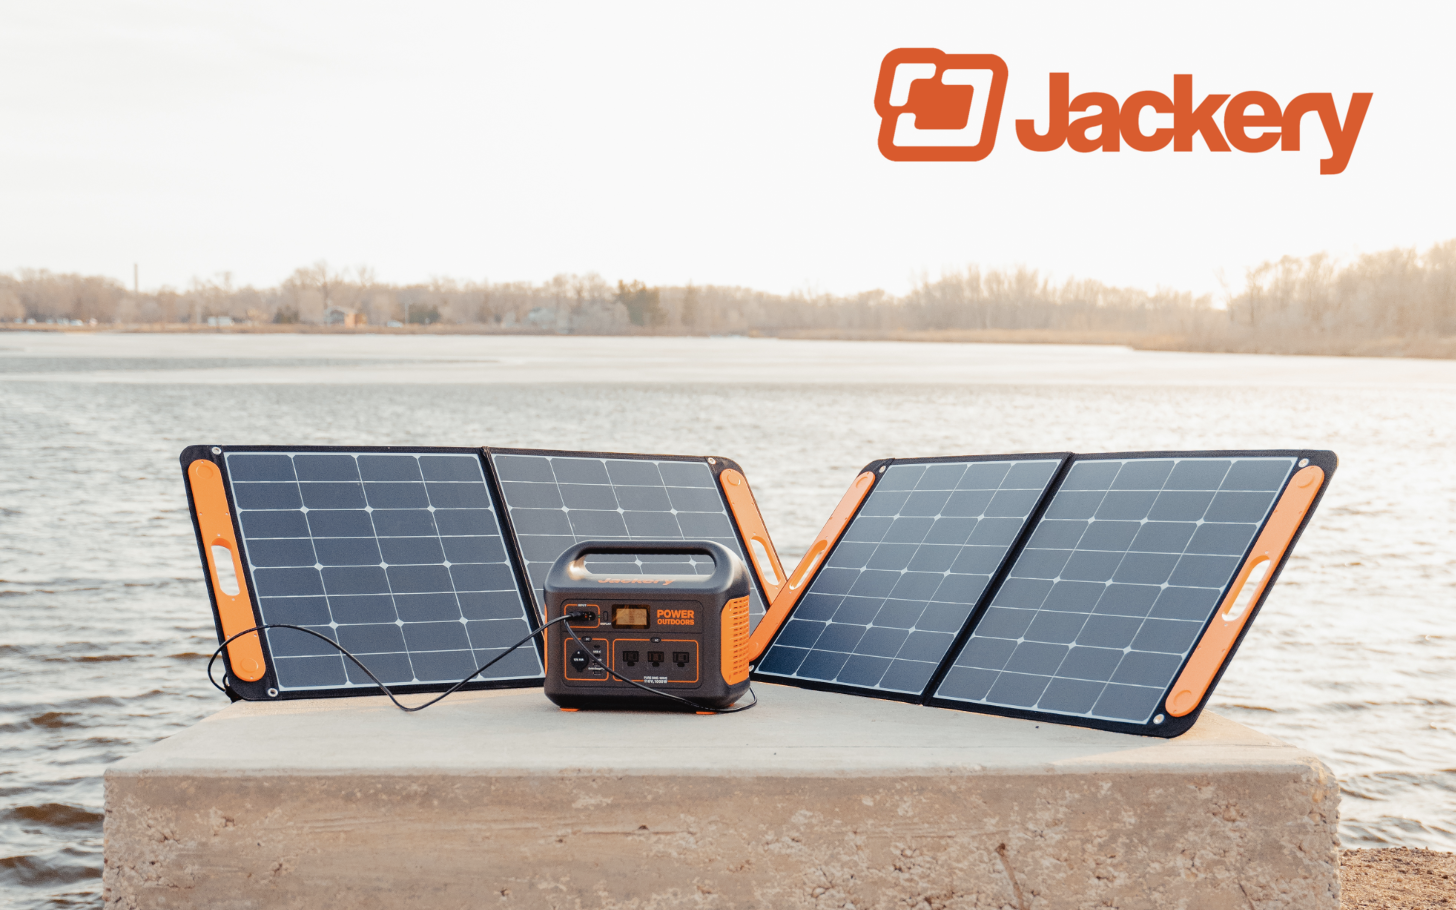 Jackery launches its most powerful portable station to date, the Jackery 1000 Explorer, with up to $300 in intro savings (Sponsored)